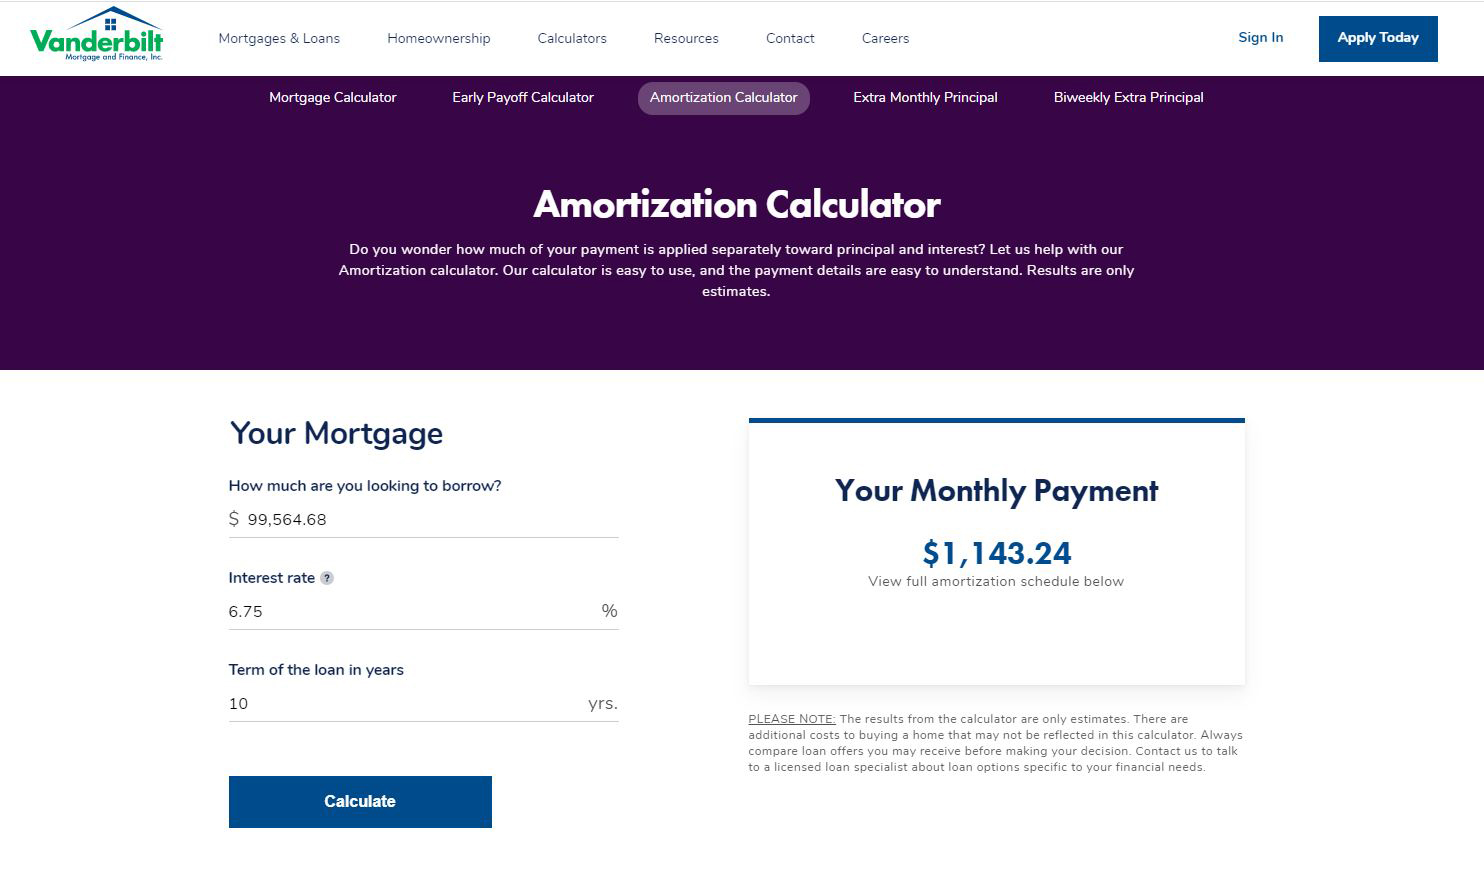 Multiple mortgage calculators help current or future home buyers make sound financial decisions.